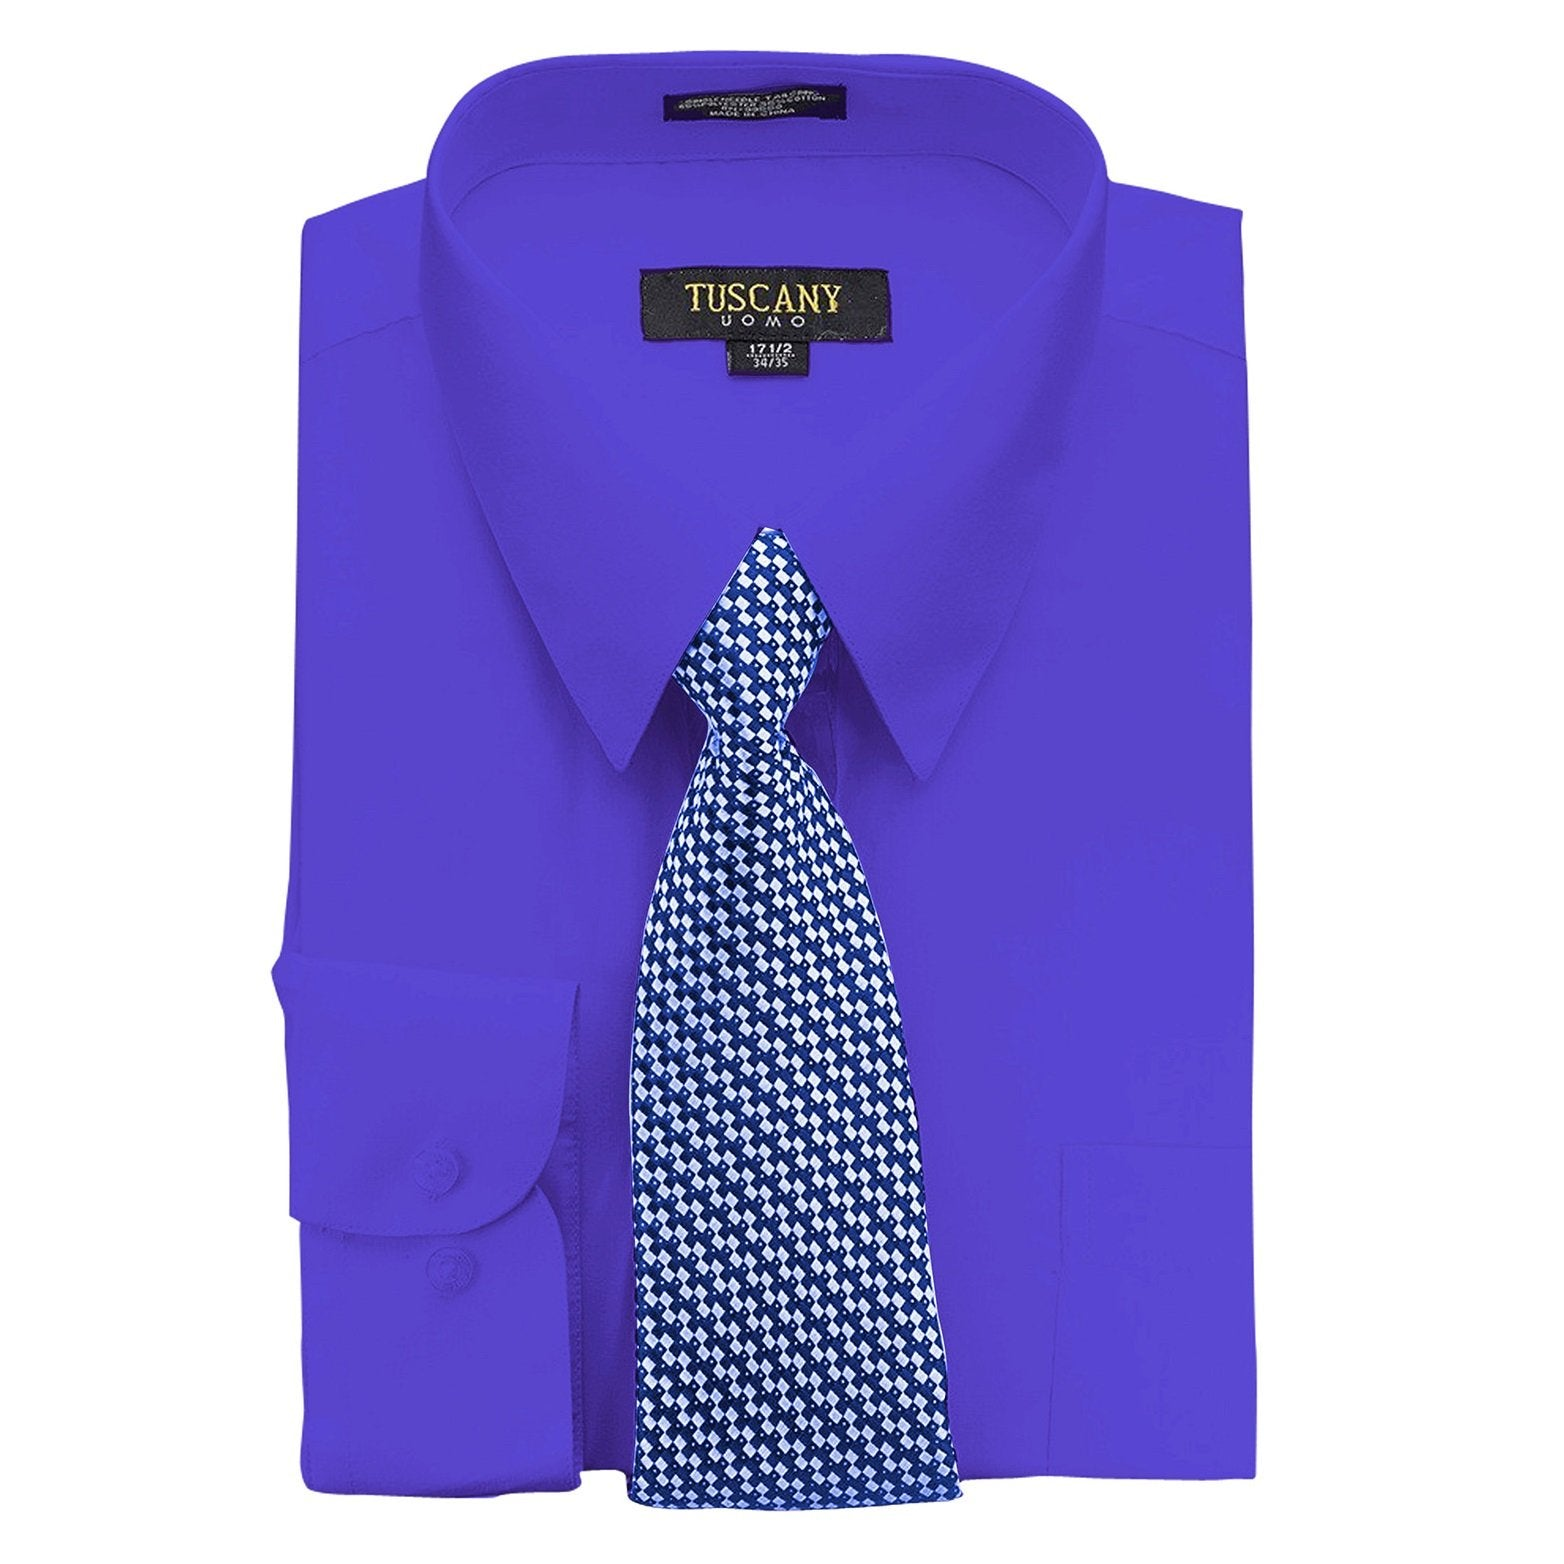 Men's Royal Blue Dress Shirt With Mystery Tie Set Regular-Fit Solid Long Sleeve -All Sizes